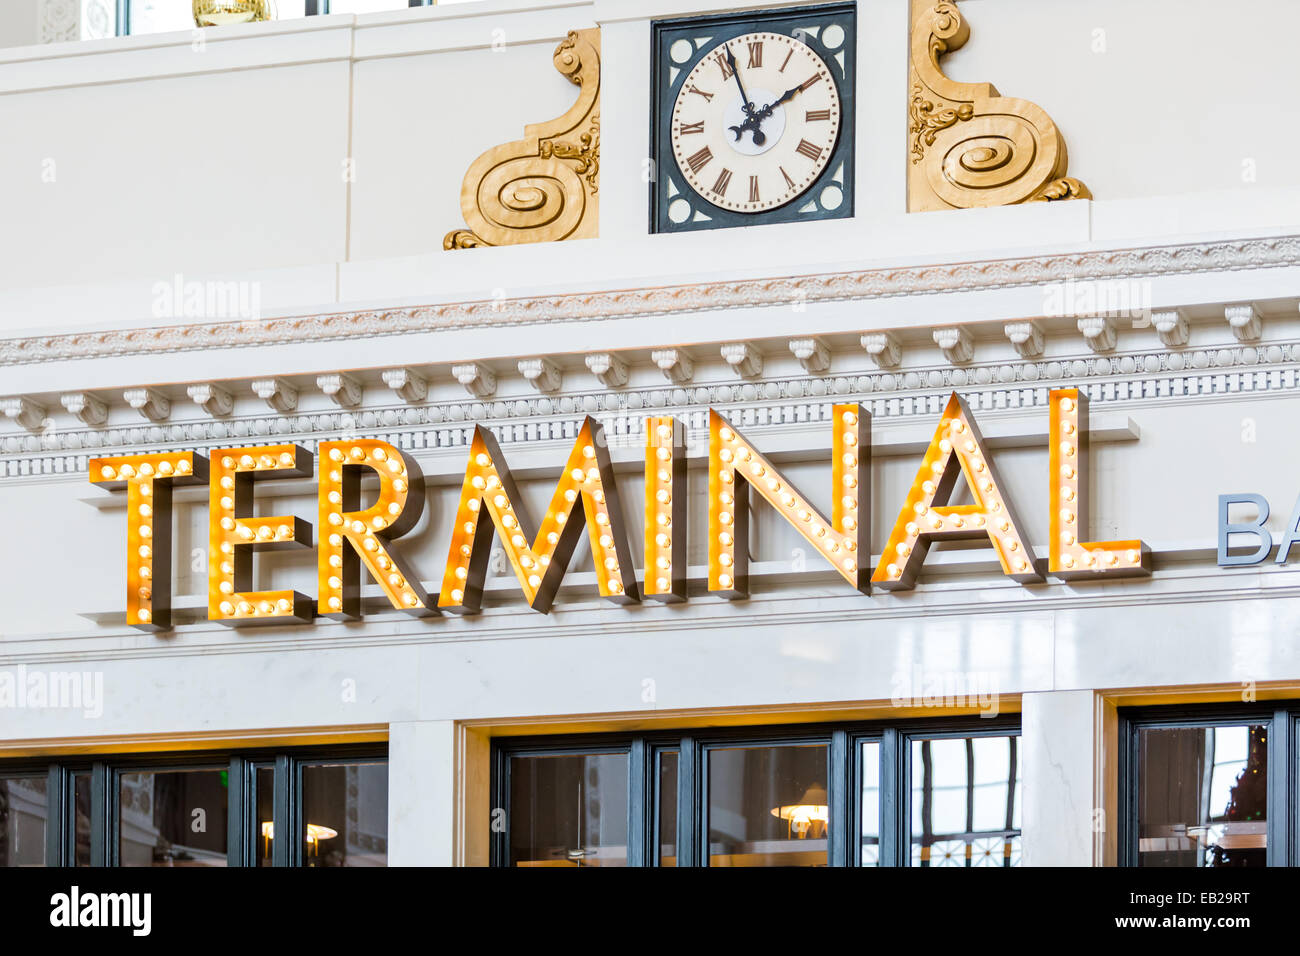 Remodeled historical Union Station in Denver, Colorado. Stock Photo